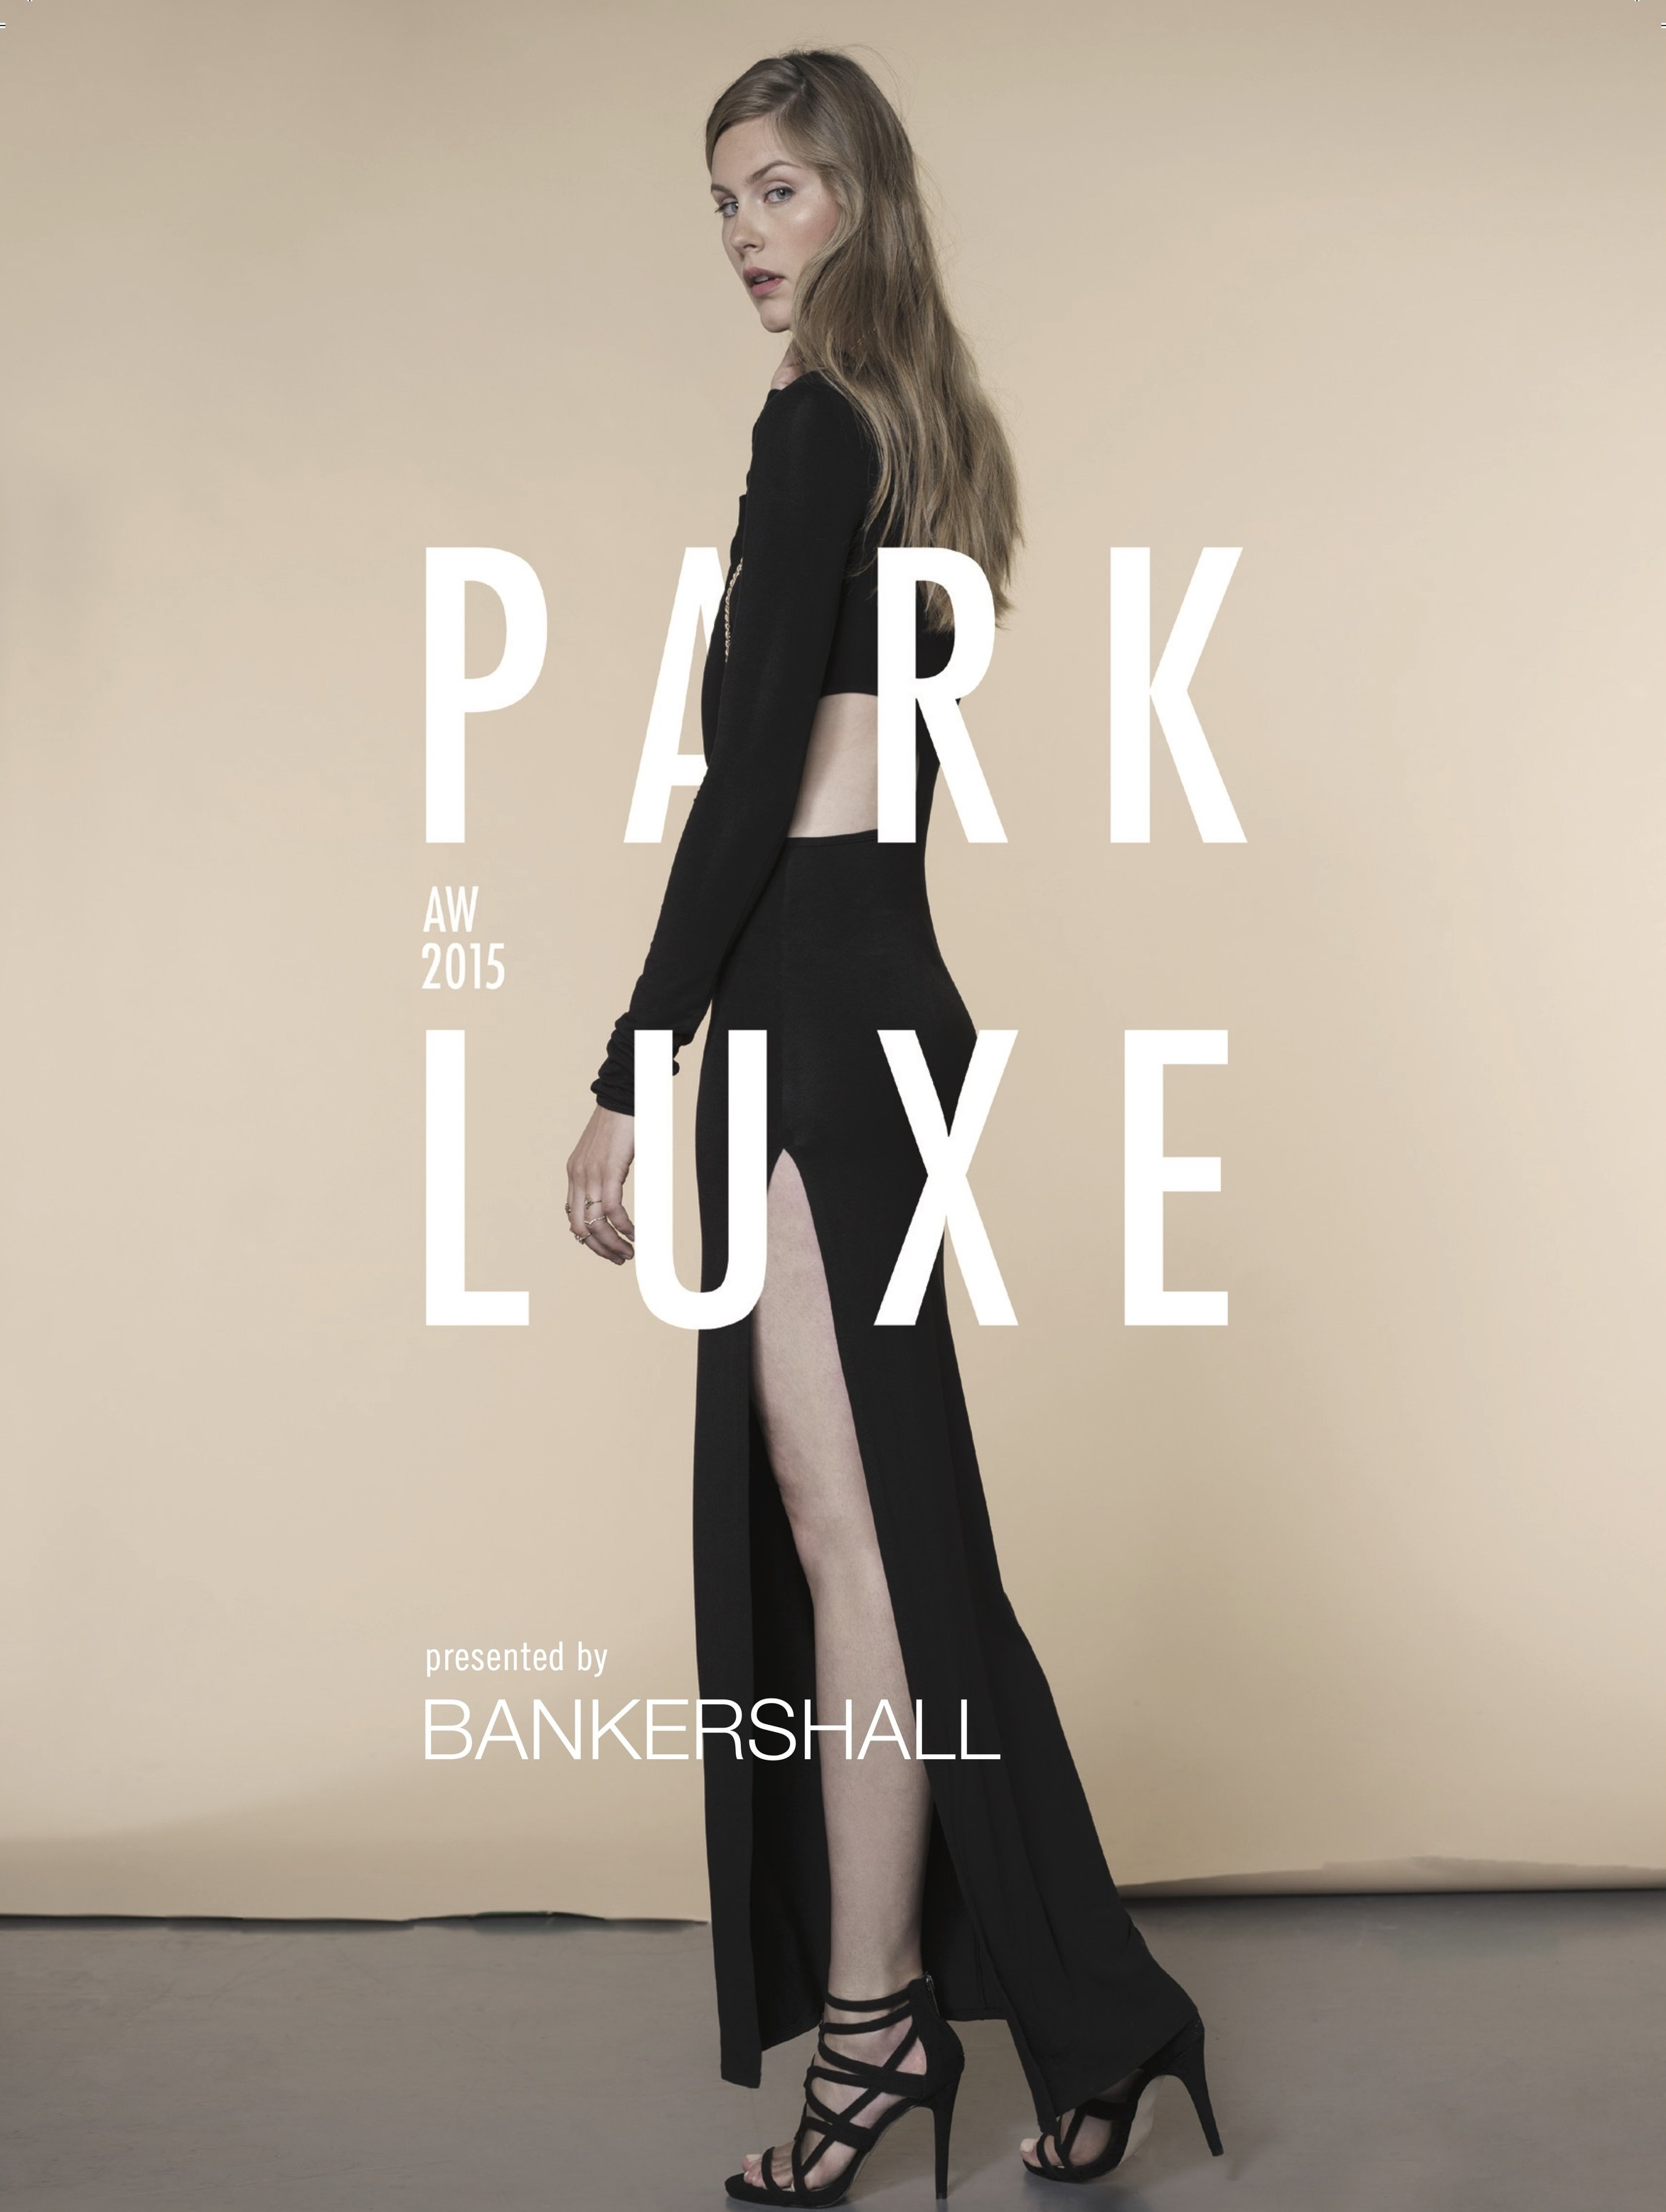 - The first campaign I was in charge of was PARKLUXE 2015. It was interesting because they'll give me a mood board, but other than that I had a lot of room to do what I want -- it was like a blank sheet of paper, which is always scary as an artist. With a piece that you're working on, you have a love/hate relationship with a campaign where in the beginning it's super exciting, and you have to try to maintain that excitement even when you get to the end and you're sorting out the little details.